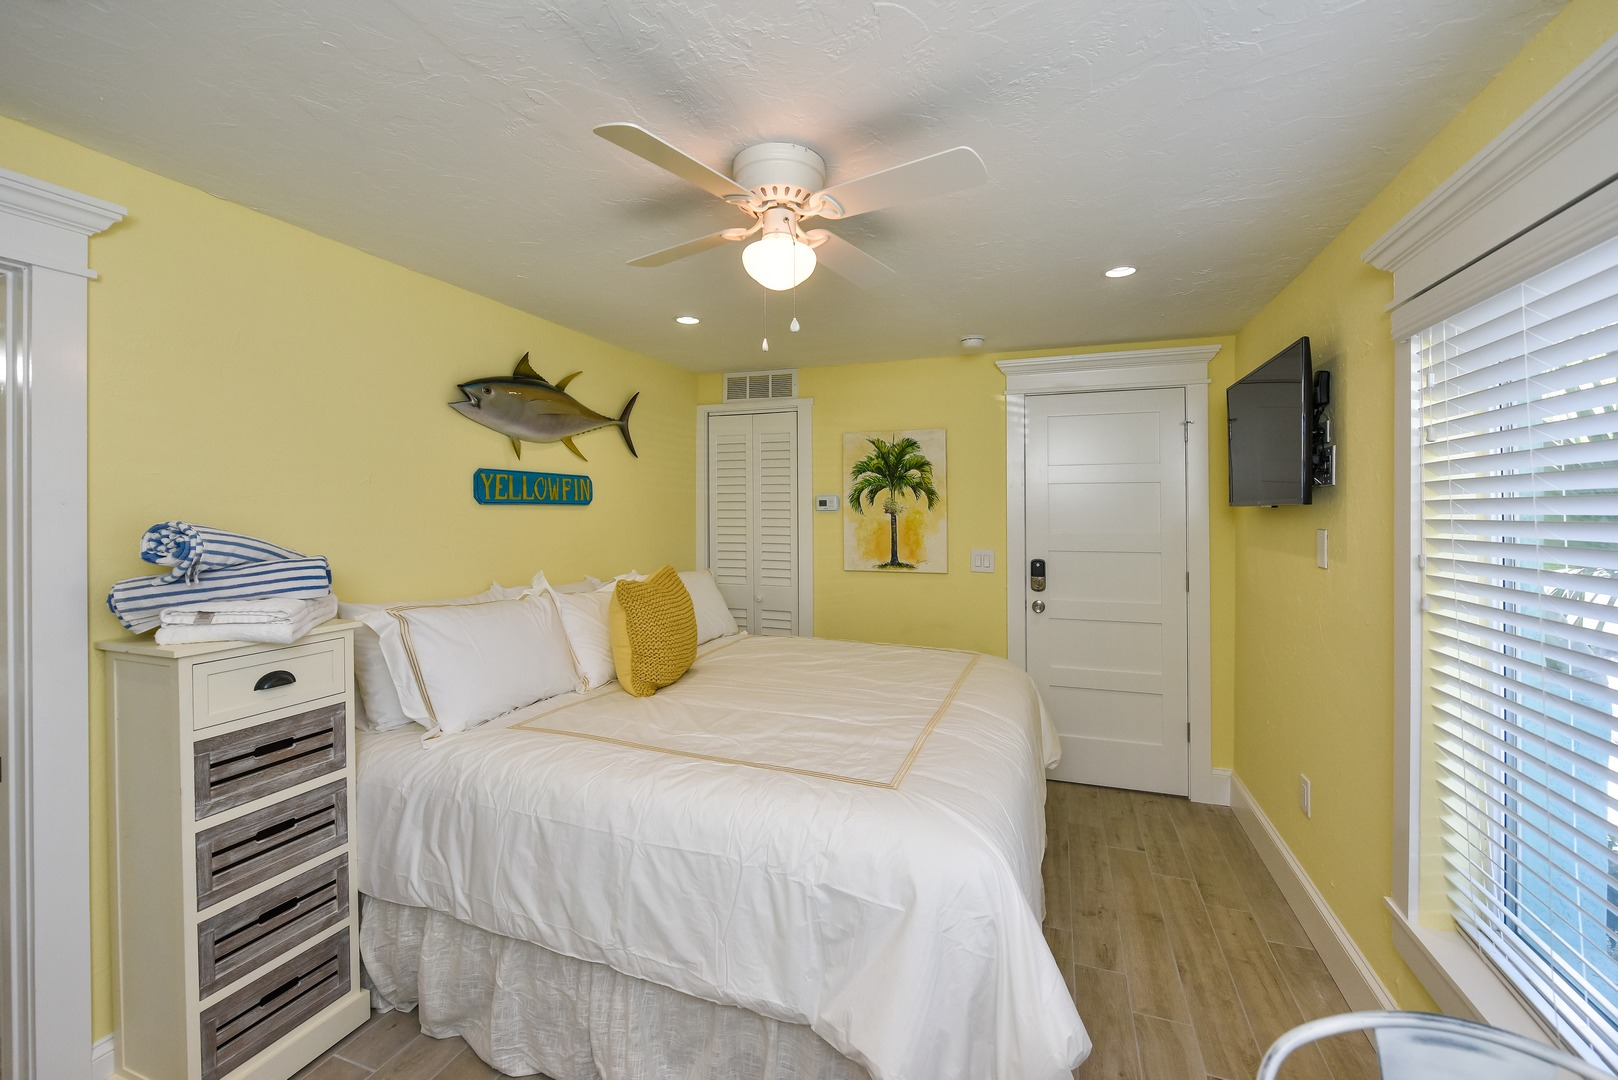 Studio Bungalow - King Bed - Kitchenette